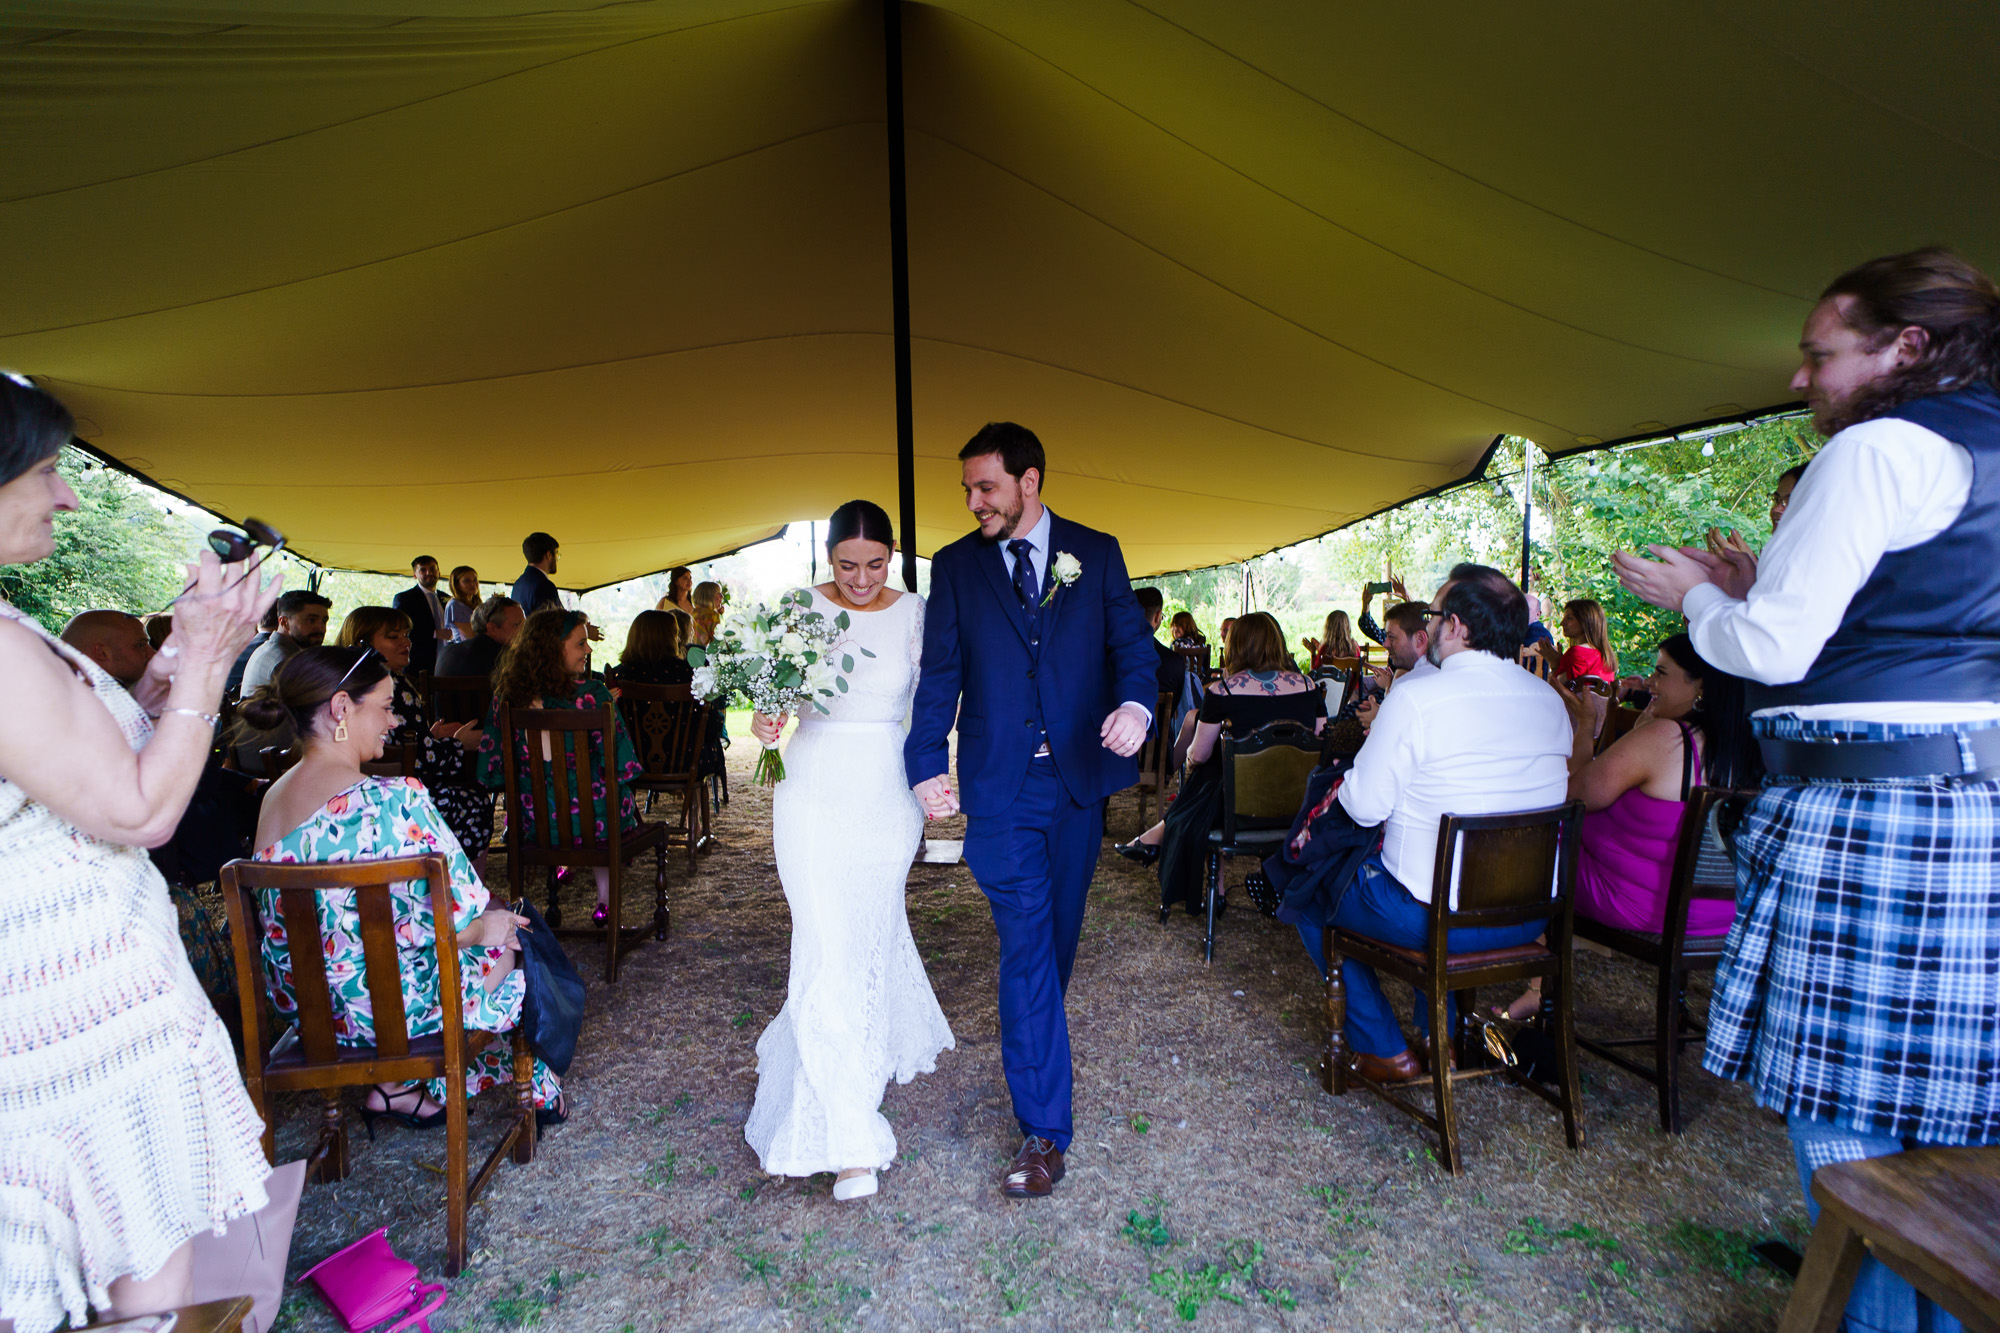 brdie and groom exit their vow renewal under tipi at Bourne Valley Inn